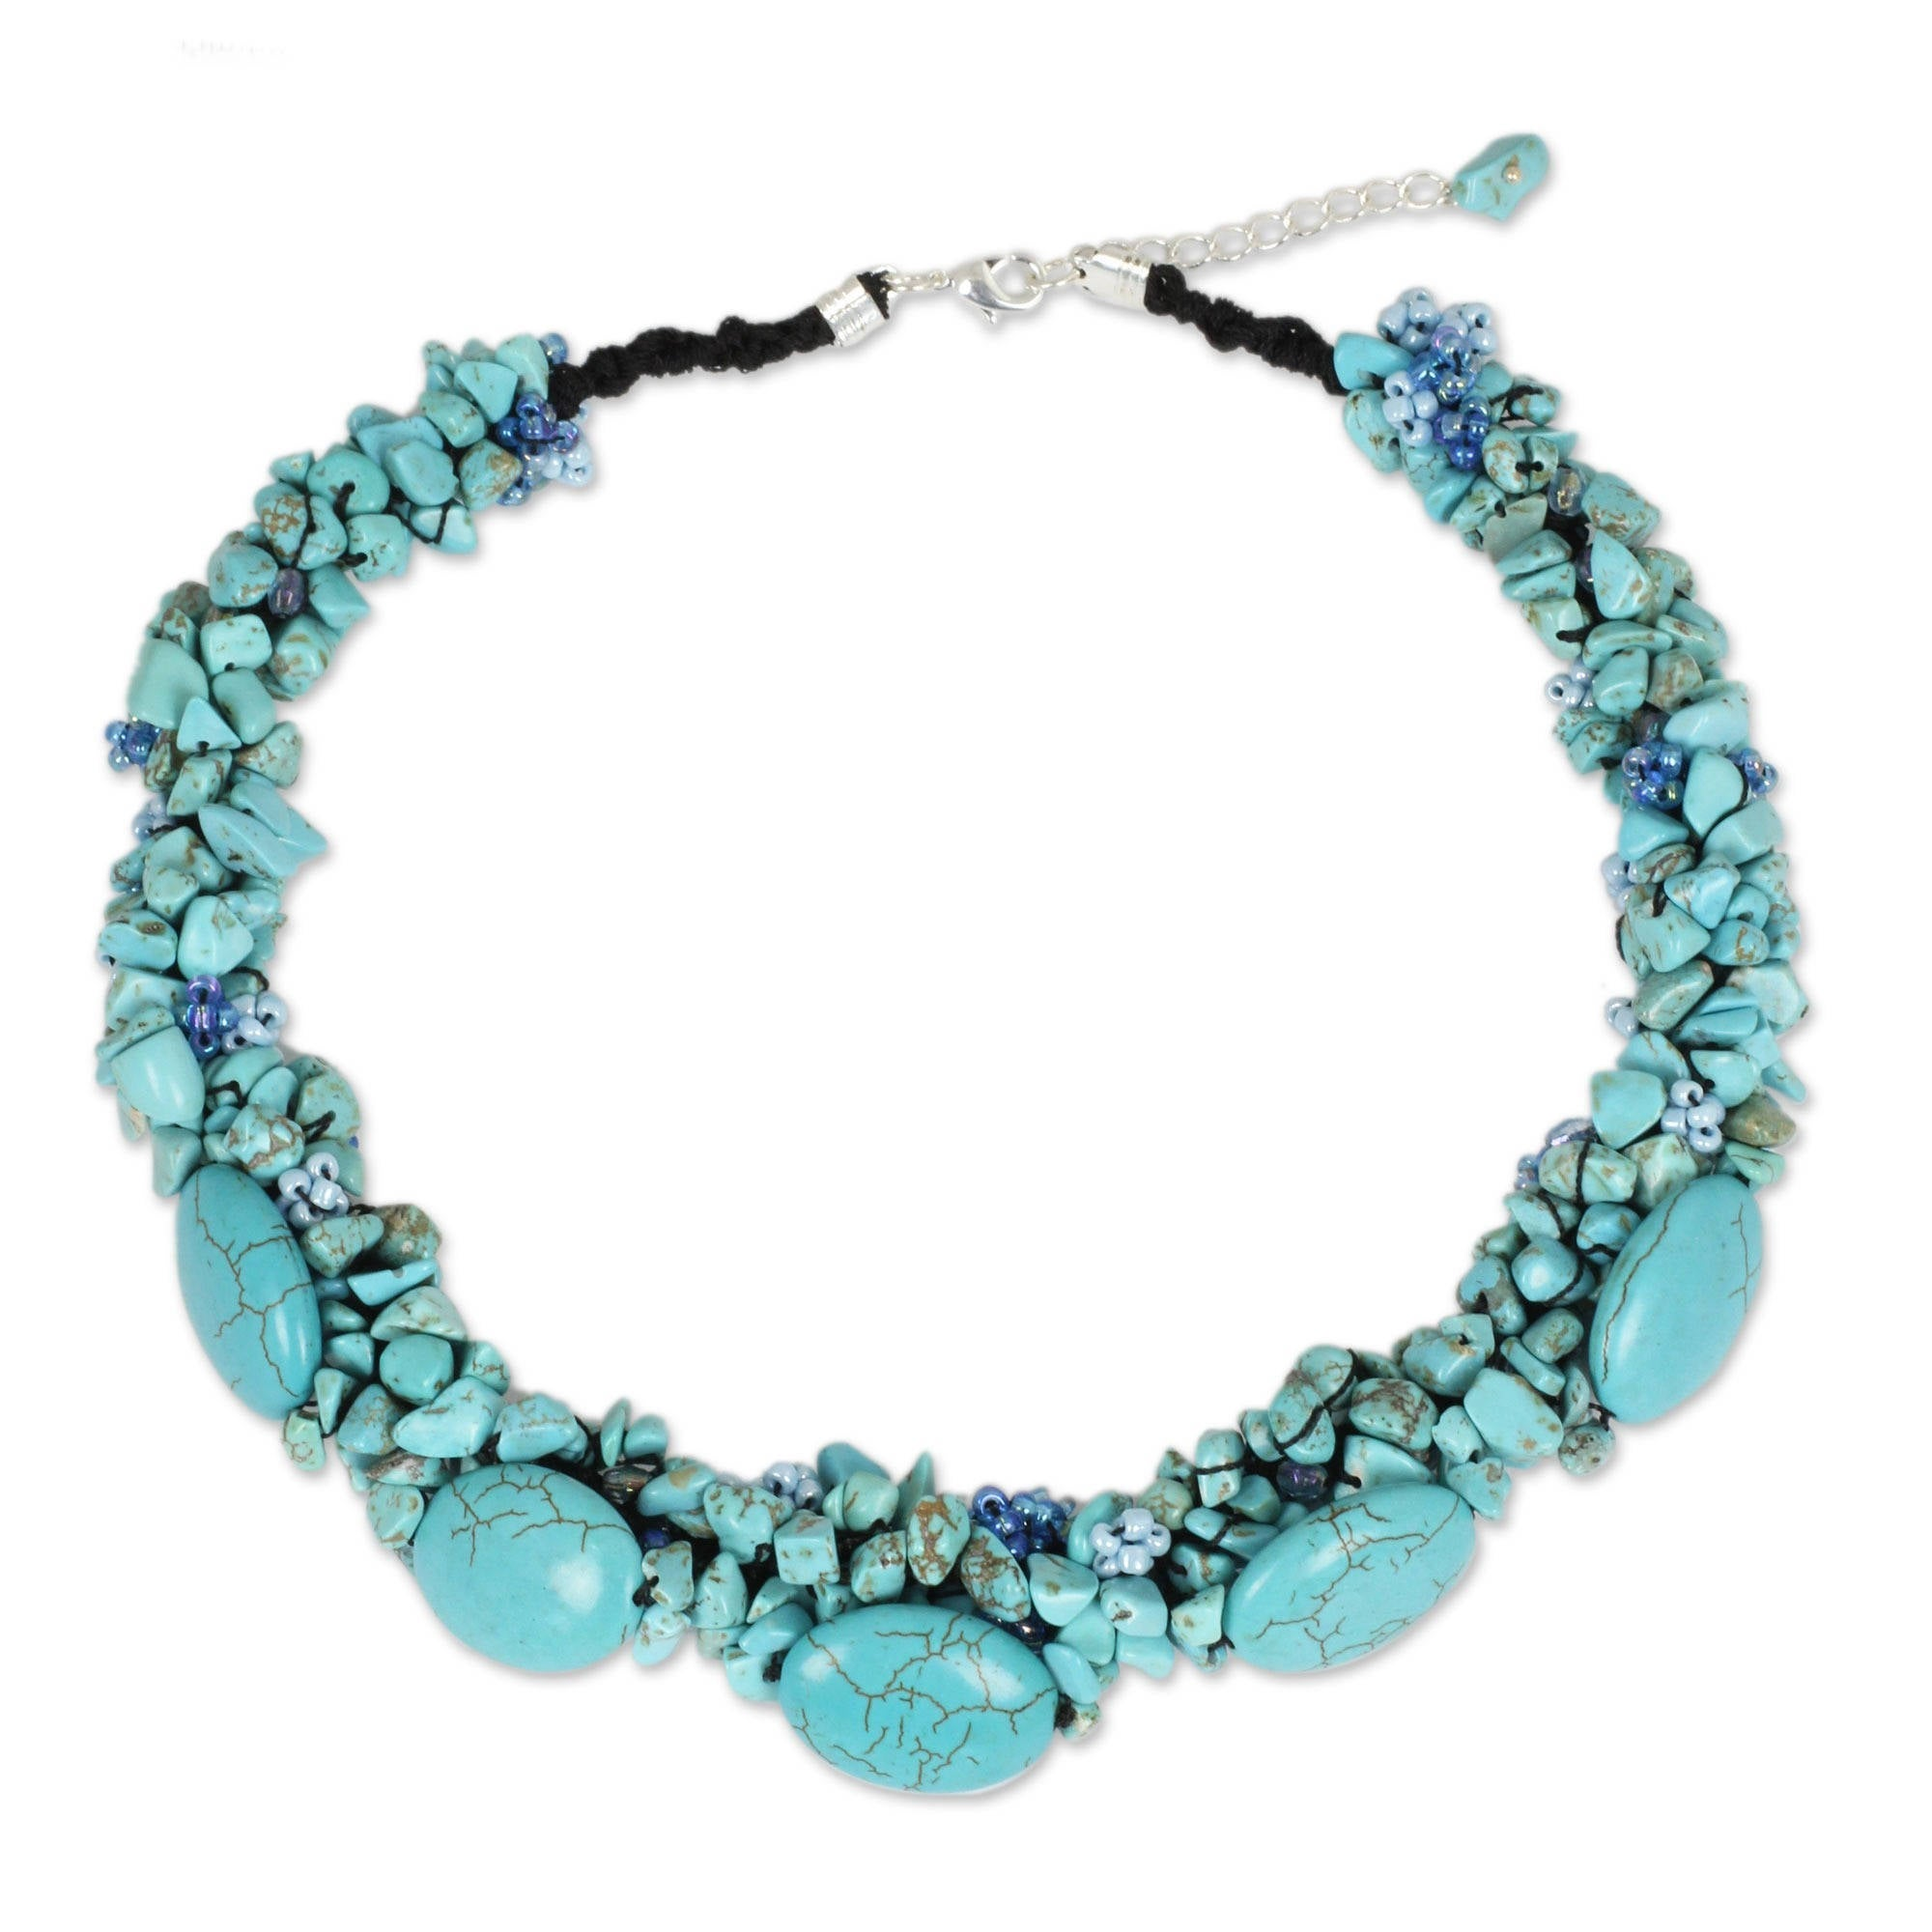 bead blue anna mint img necklace nova products boutique